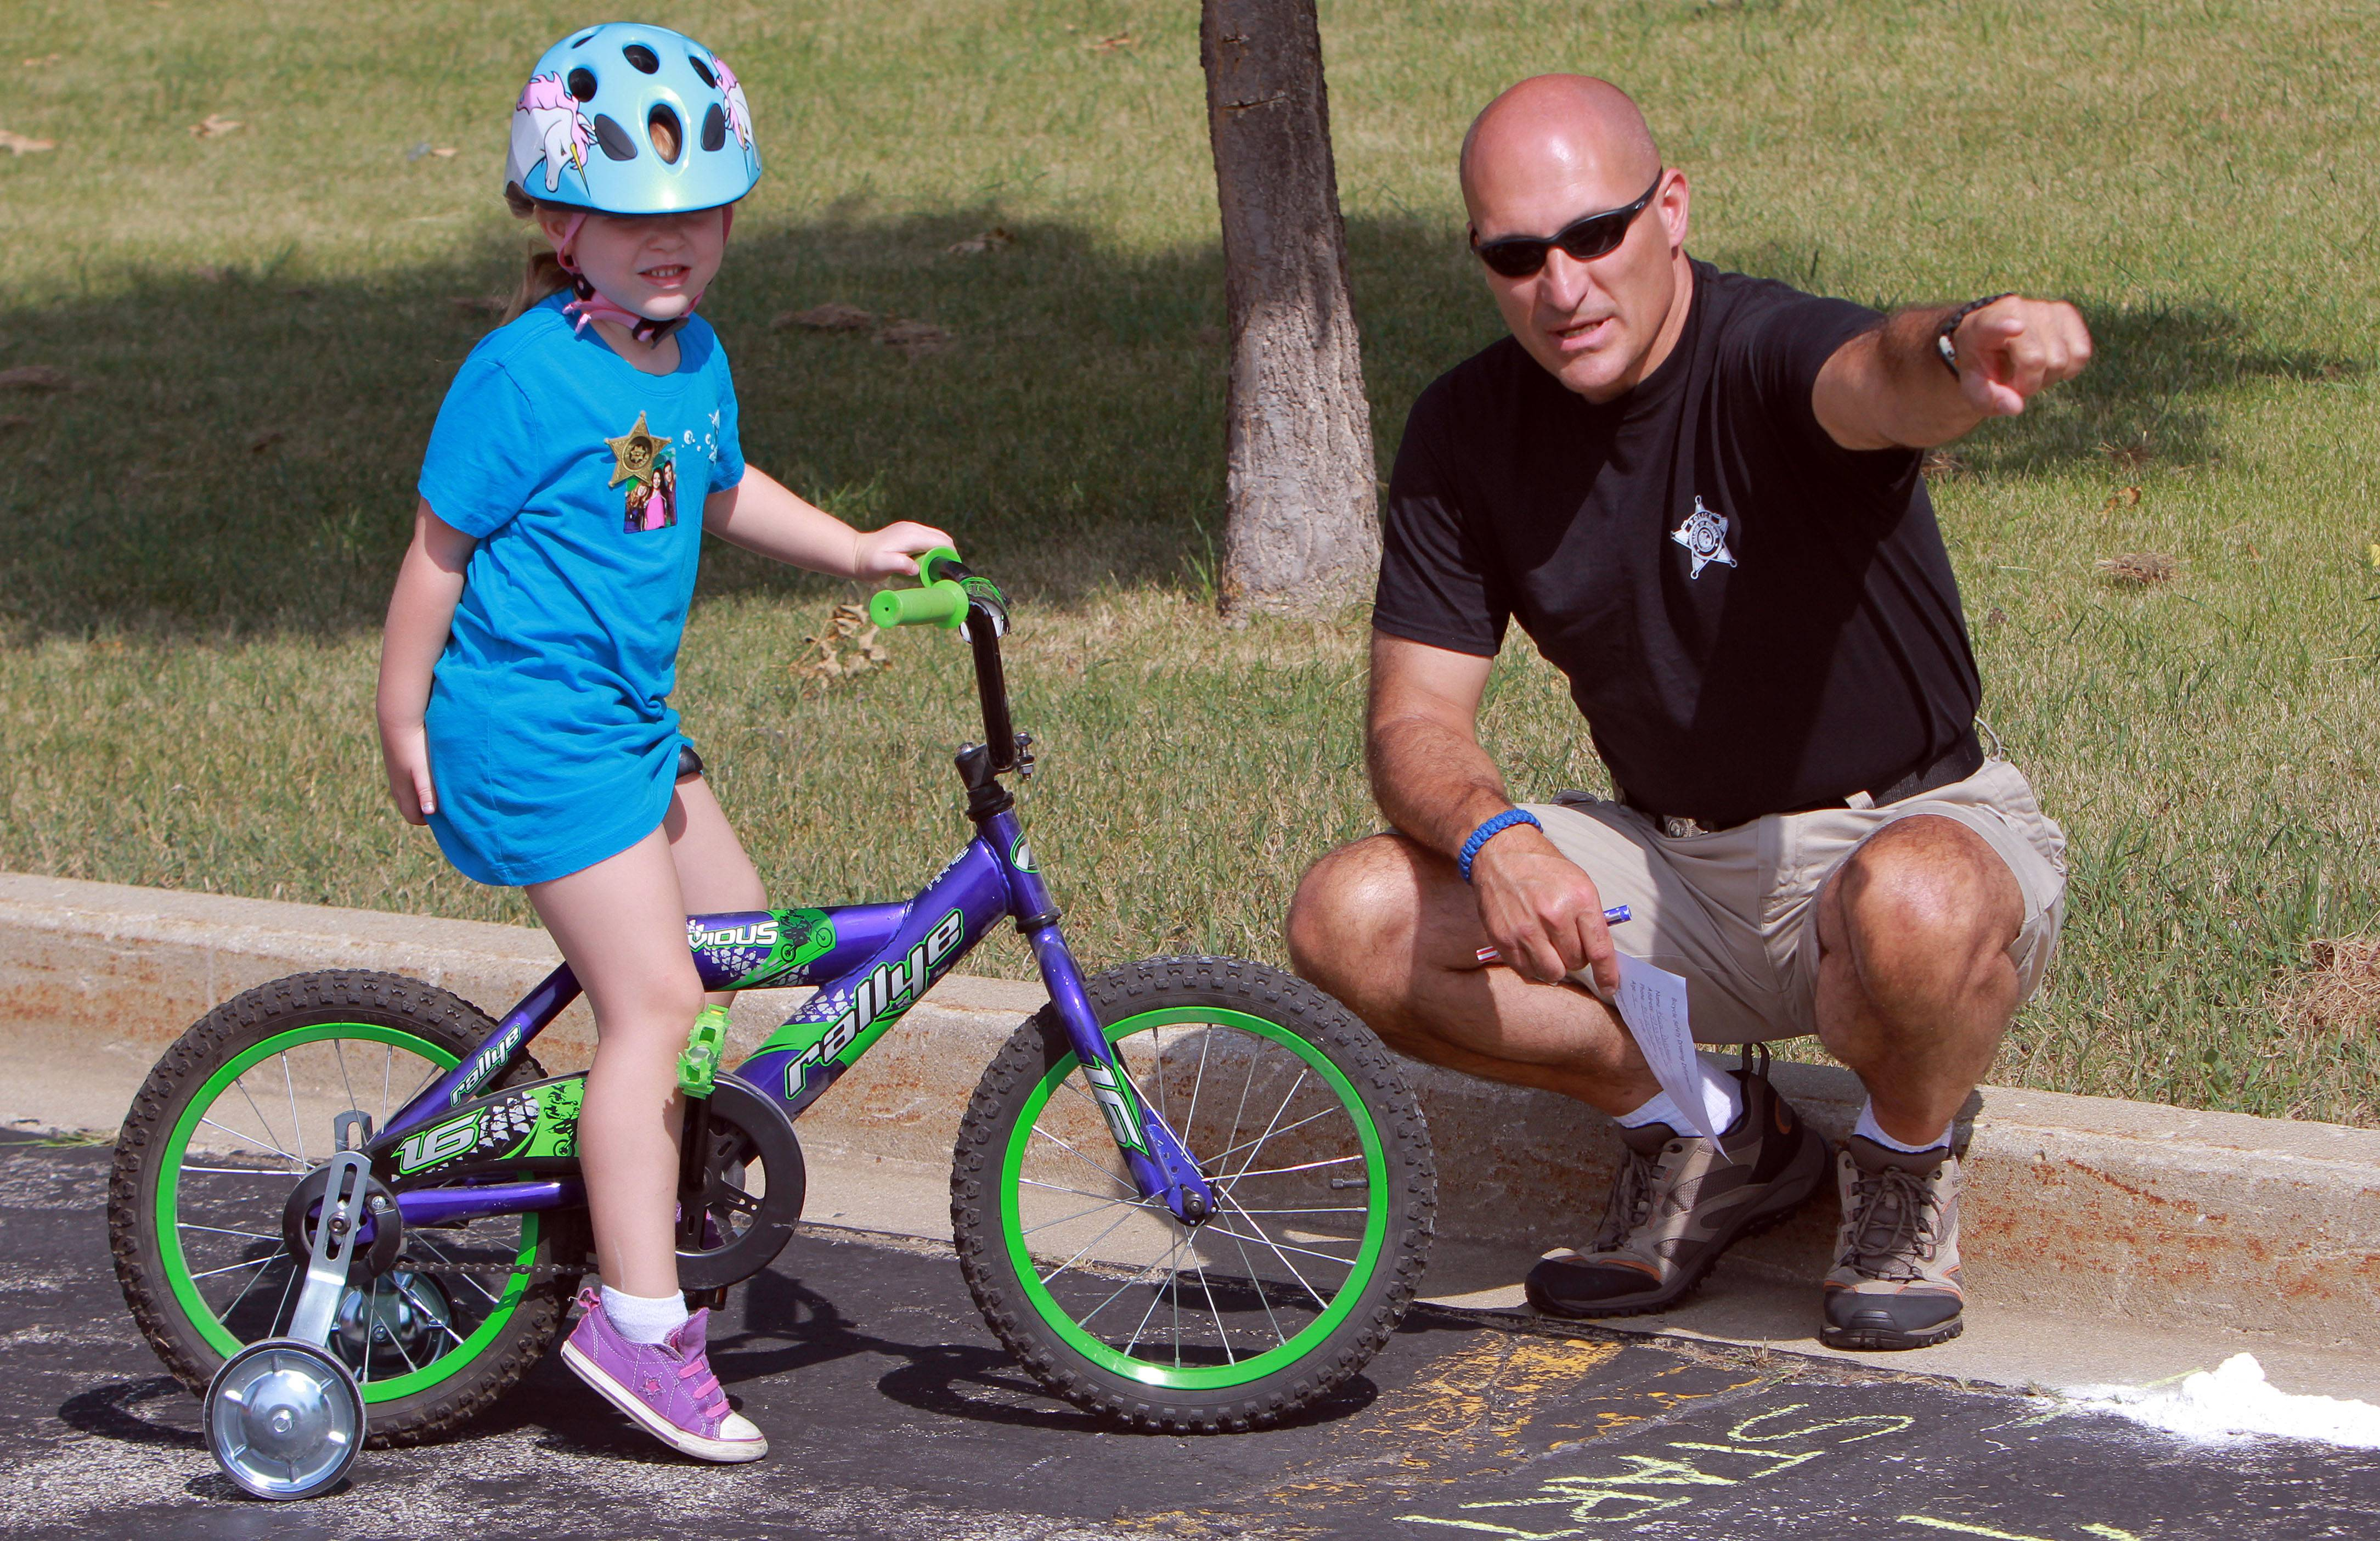 Keira Dallstream, 4, of Gurnee, gets some pointers from Gurnee Police Officer Marty DePerte during Thursday's bike rodeo at Woodland Middle School in Gurnee.